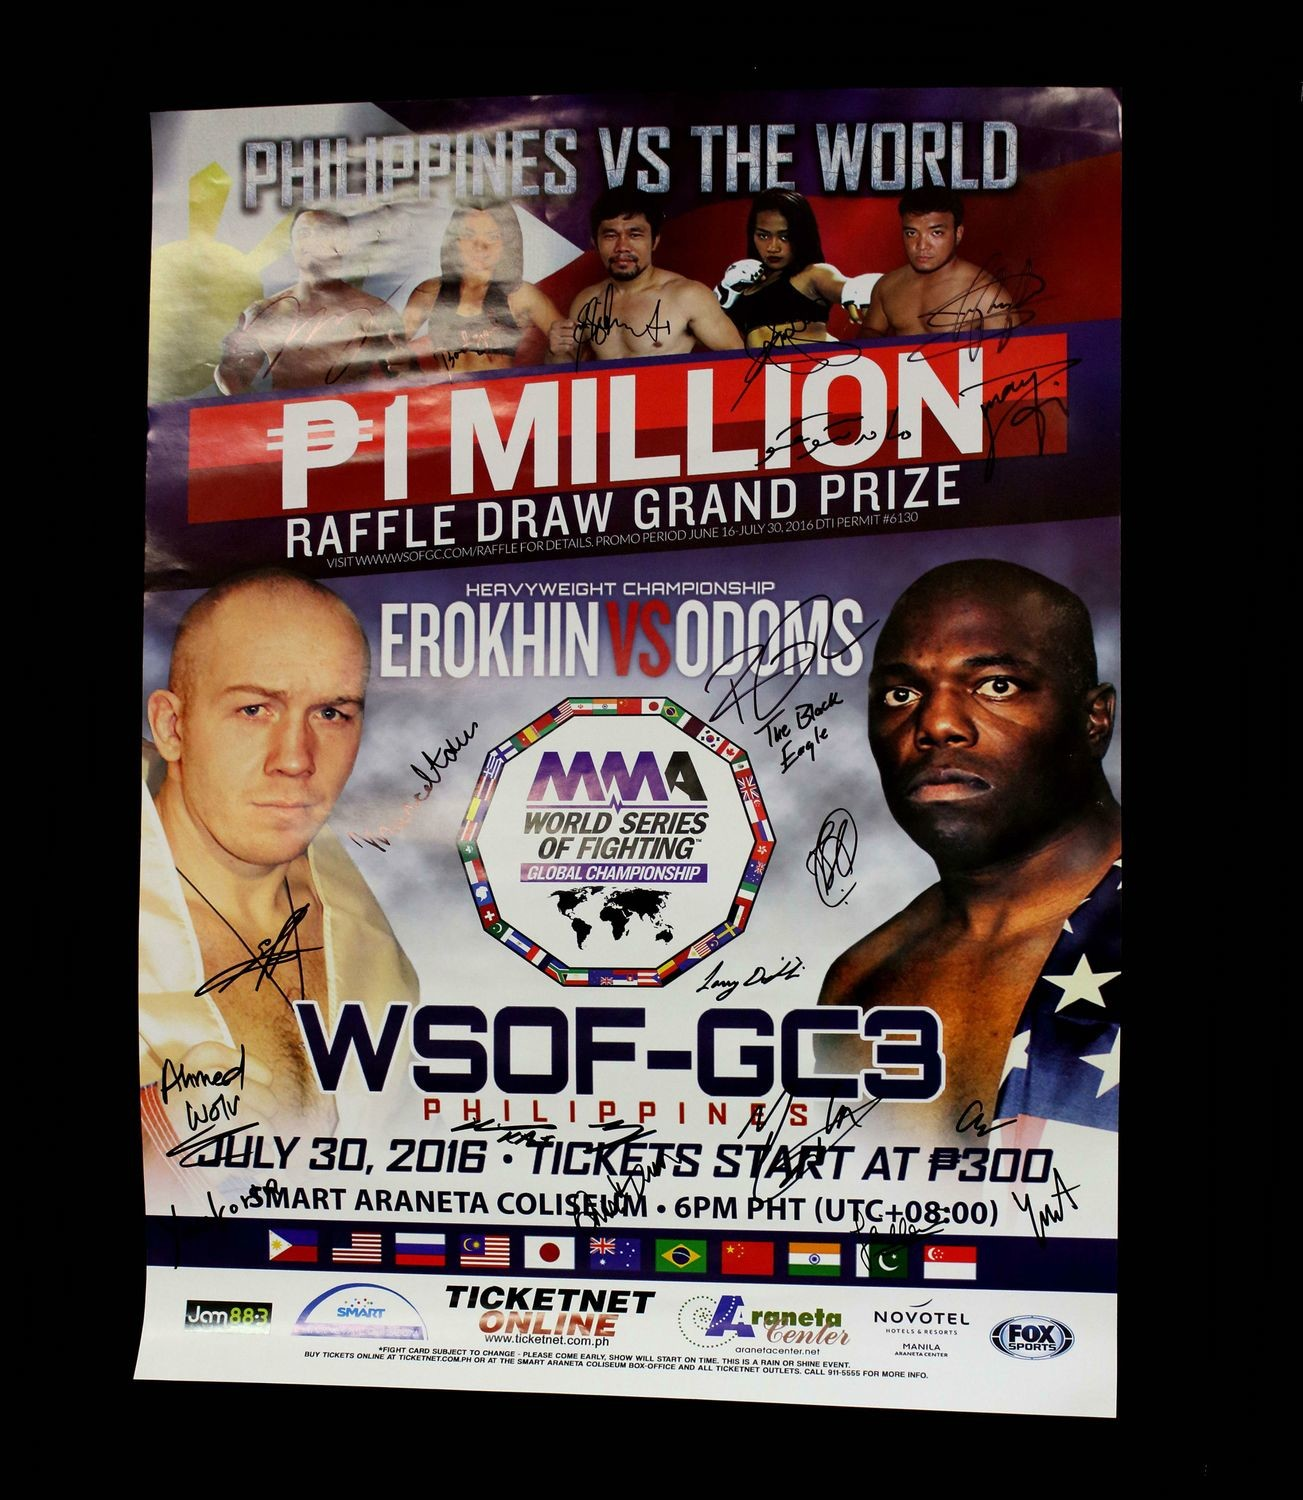 World Series of Fighting Global Championship 3